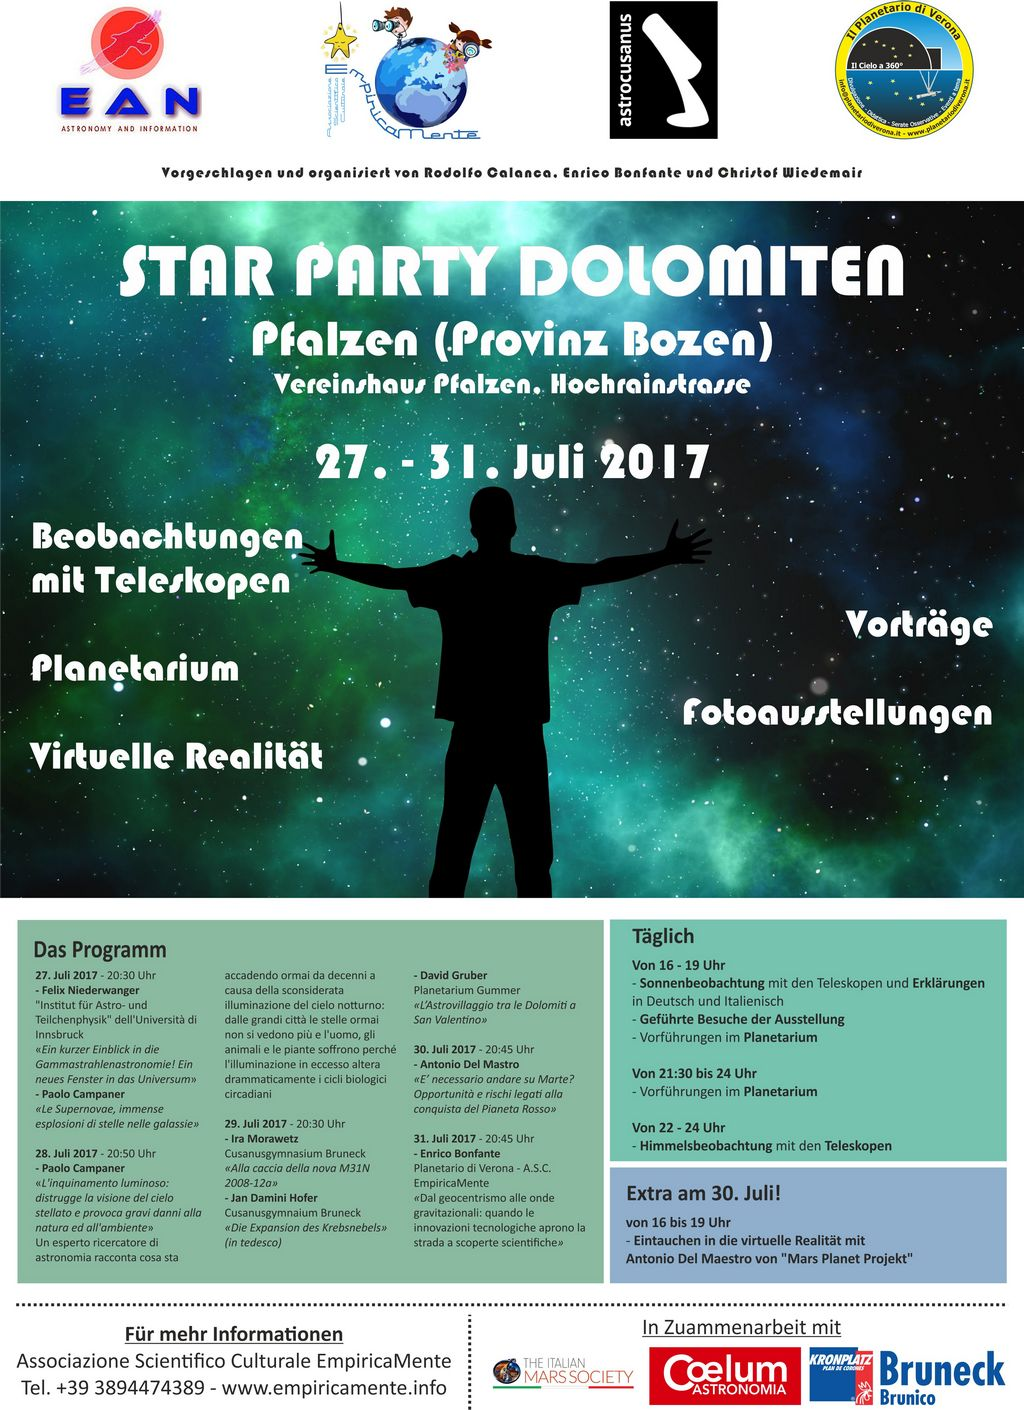 Poster/Invitation of the Star Party